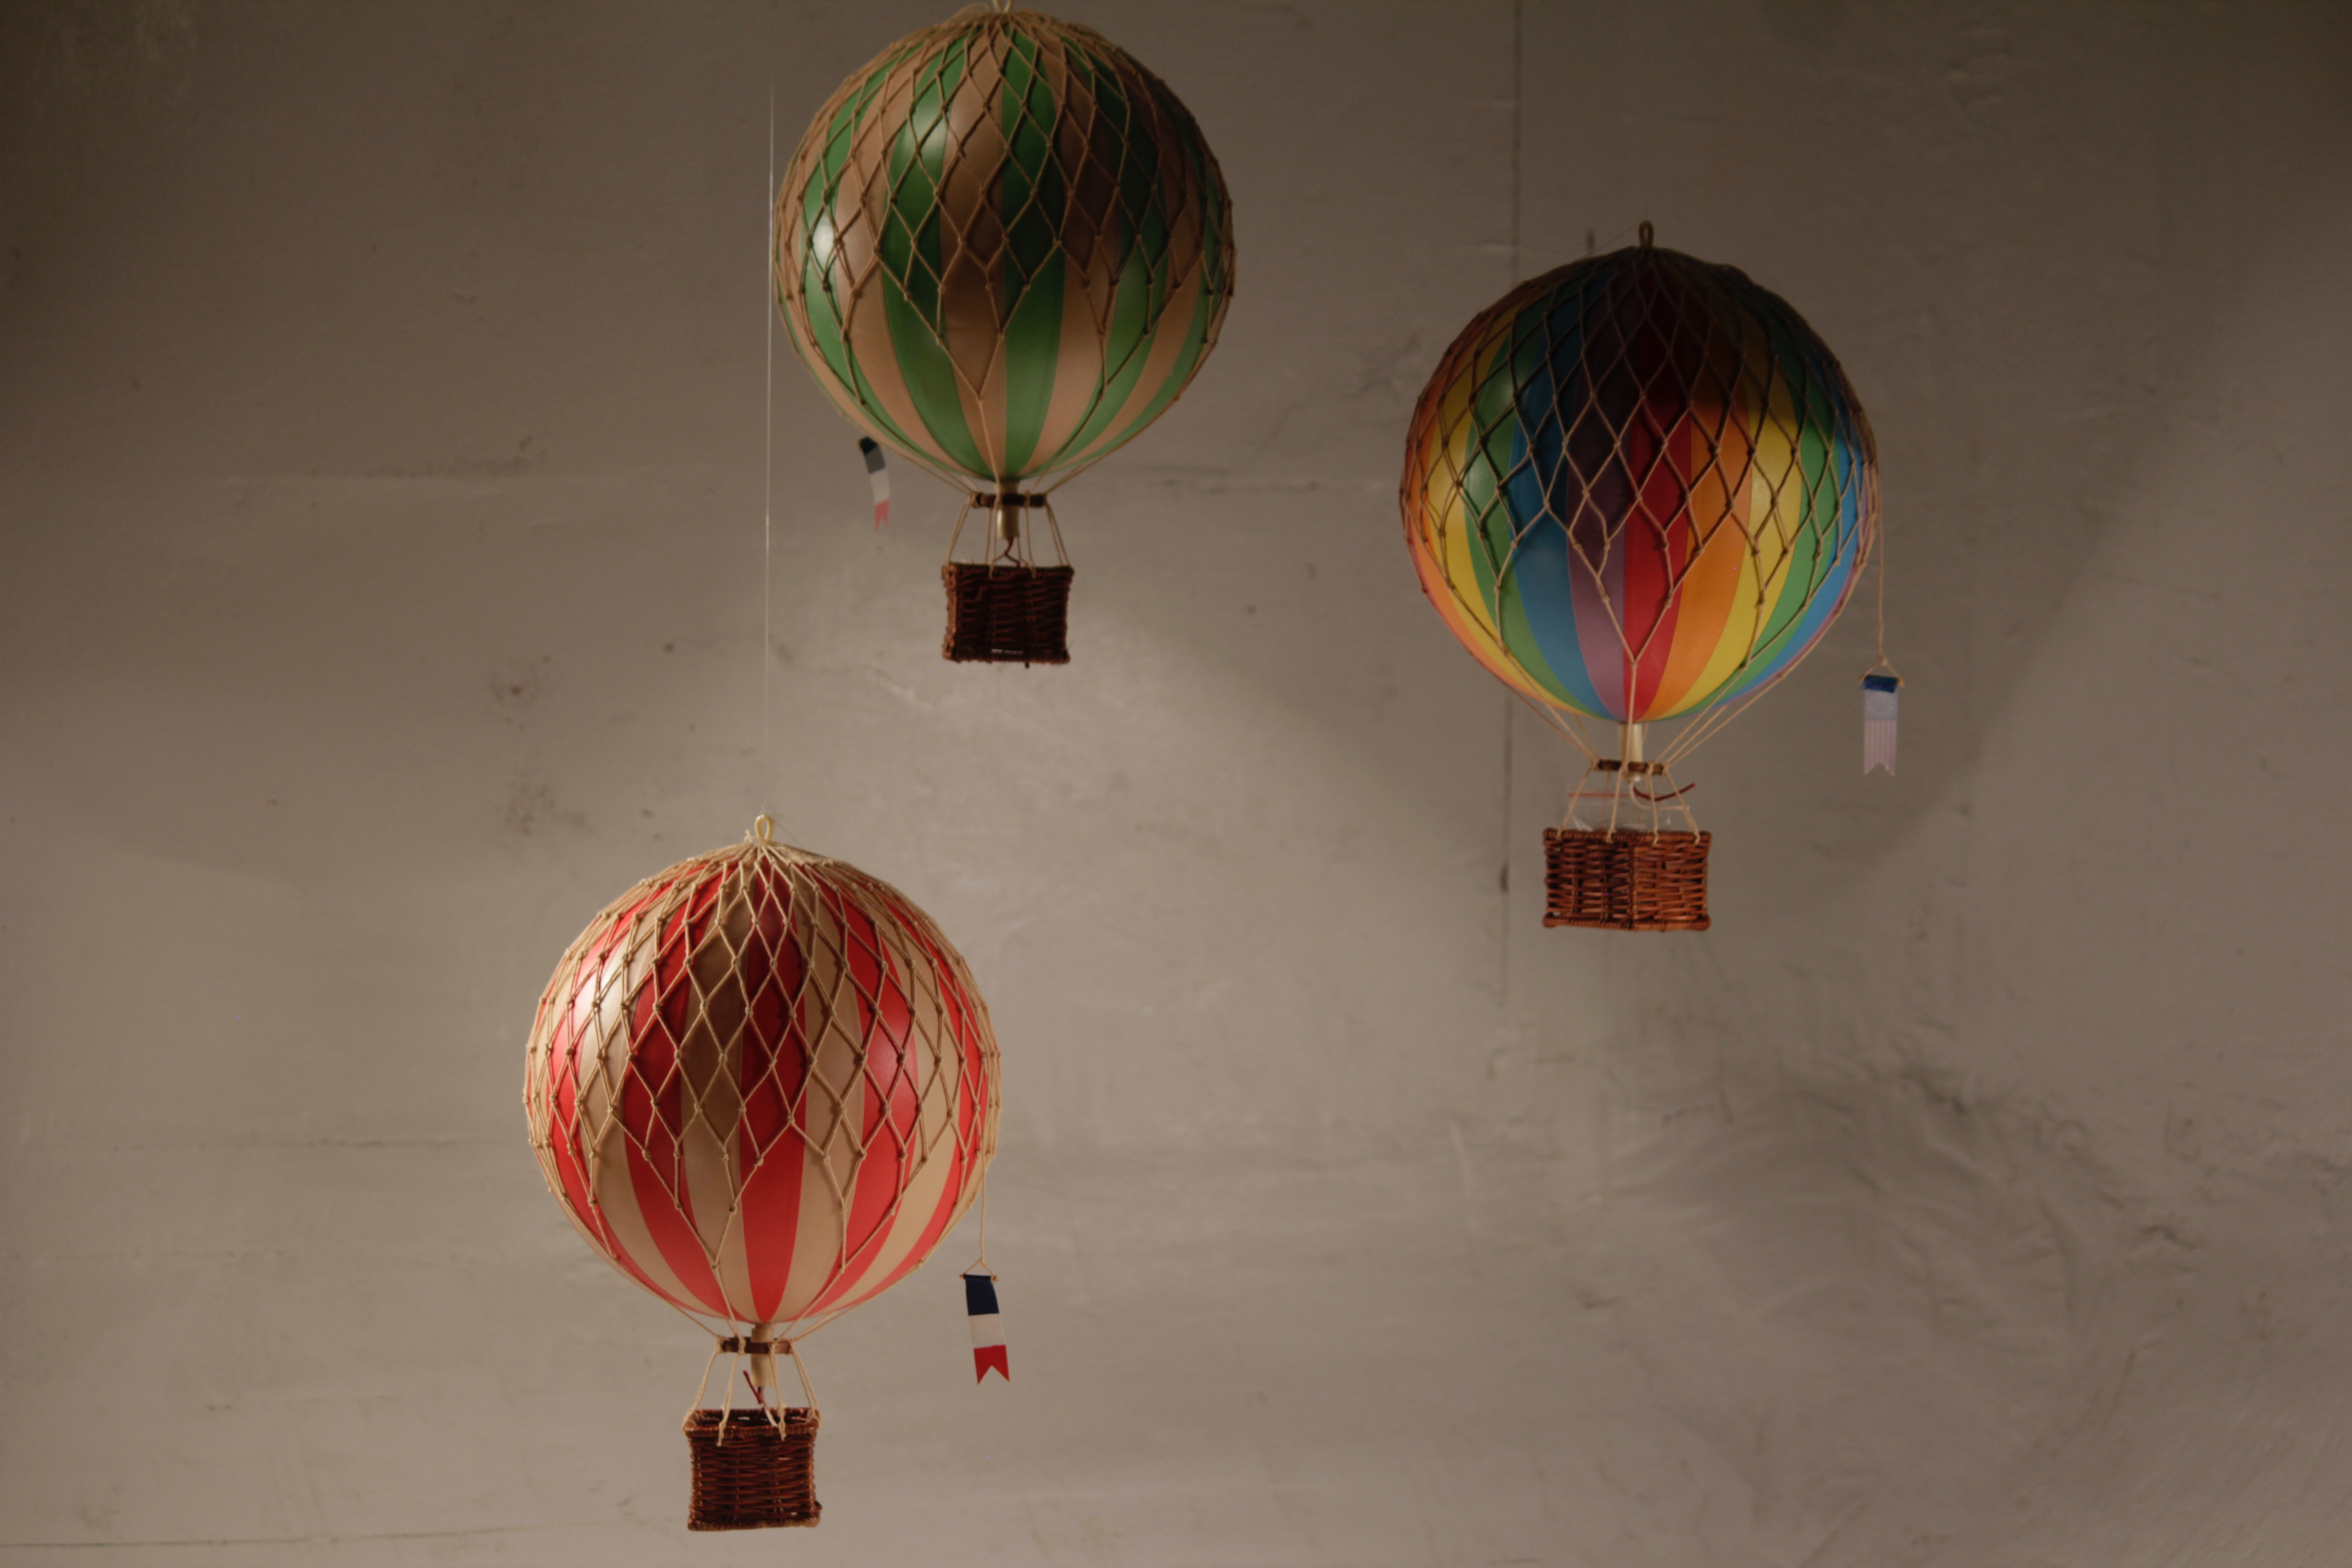 Hot Air Balloon, Small